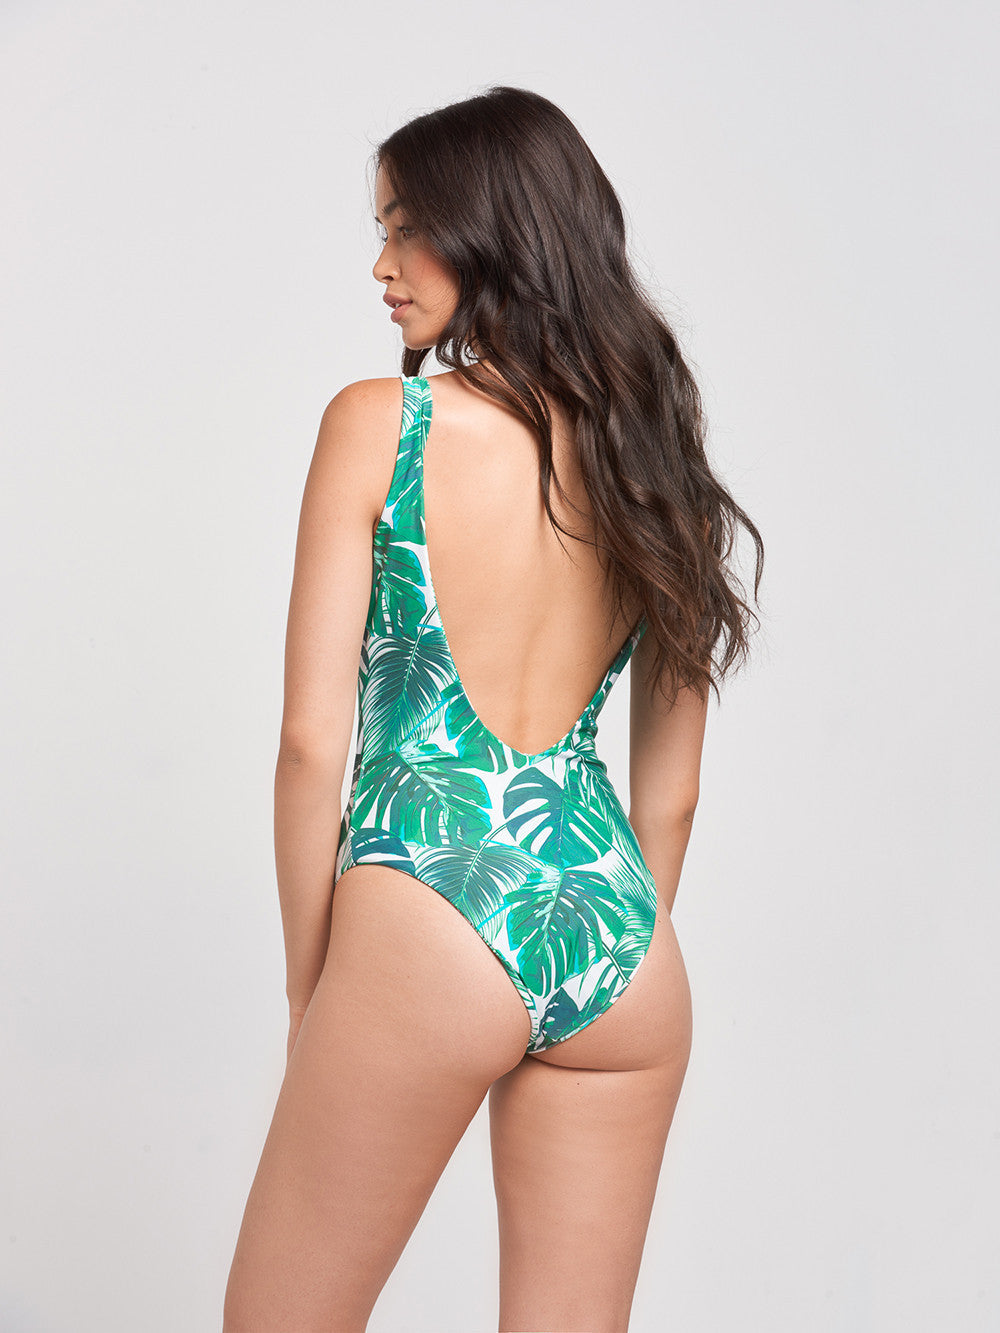 Reckless Girls Womens - Swimwear - One Piece Sandy Lace Up One Piece- Palm Tropical